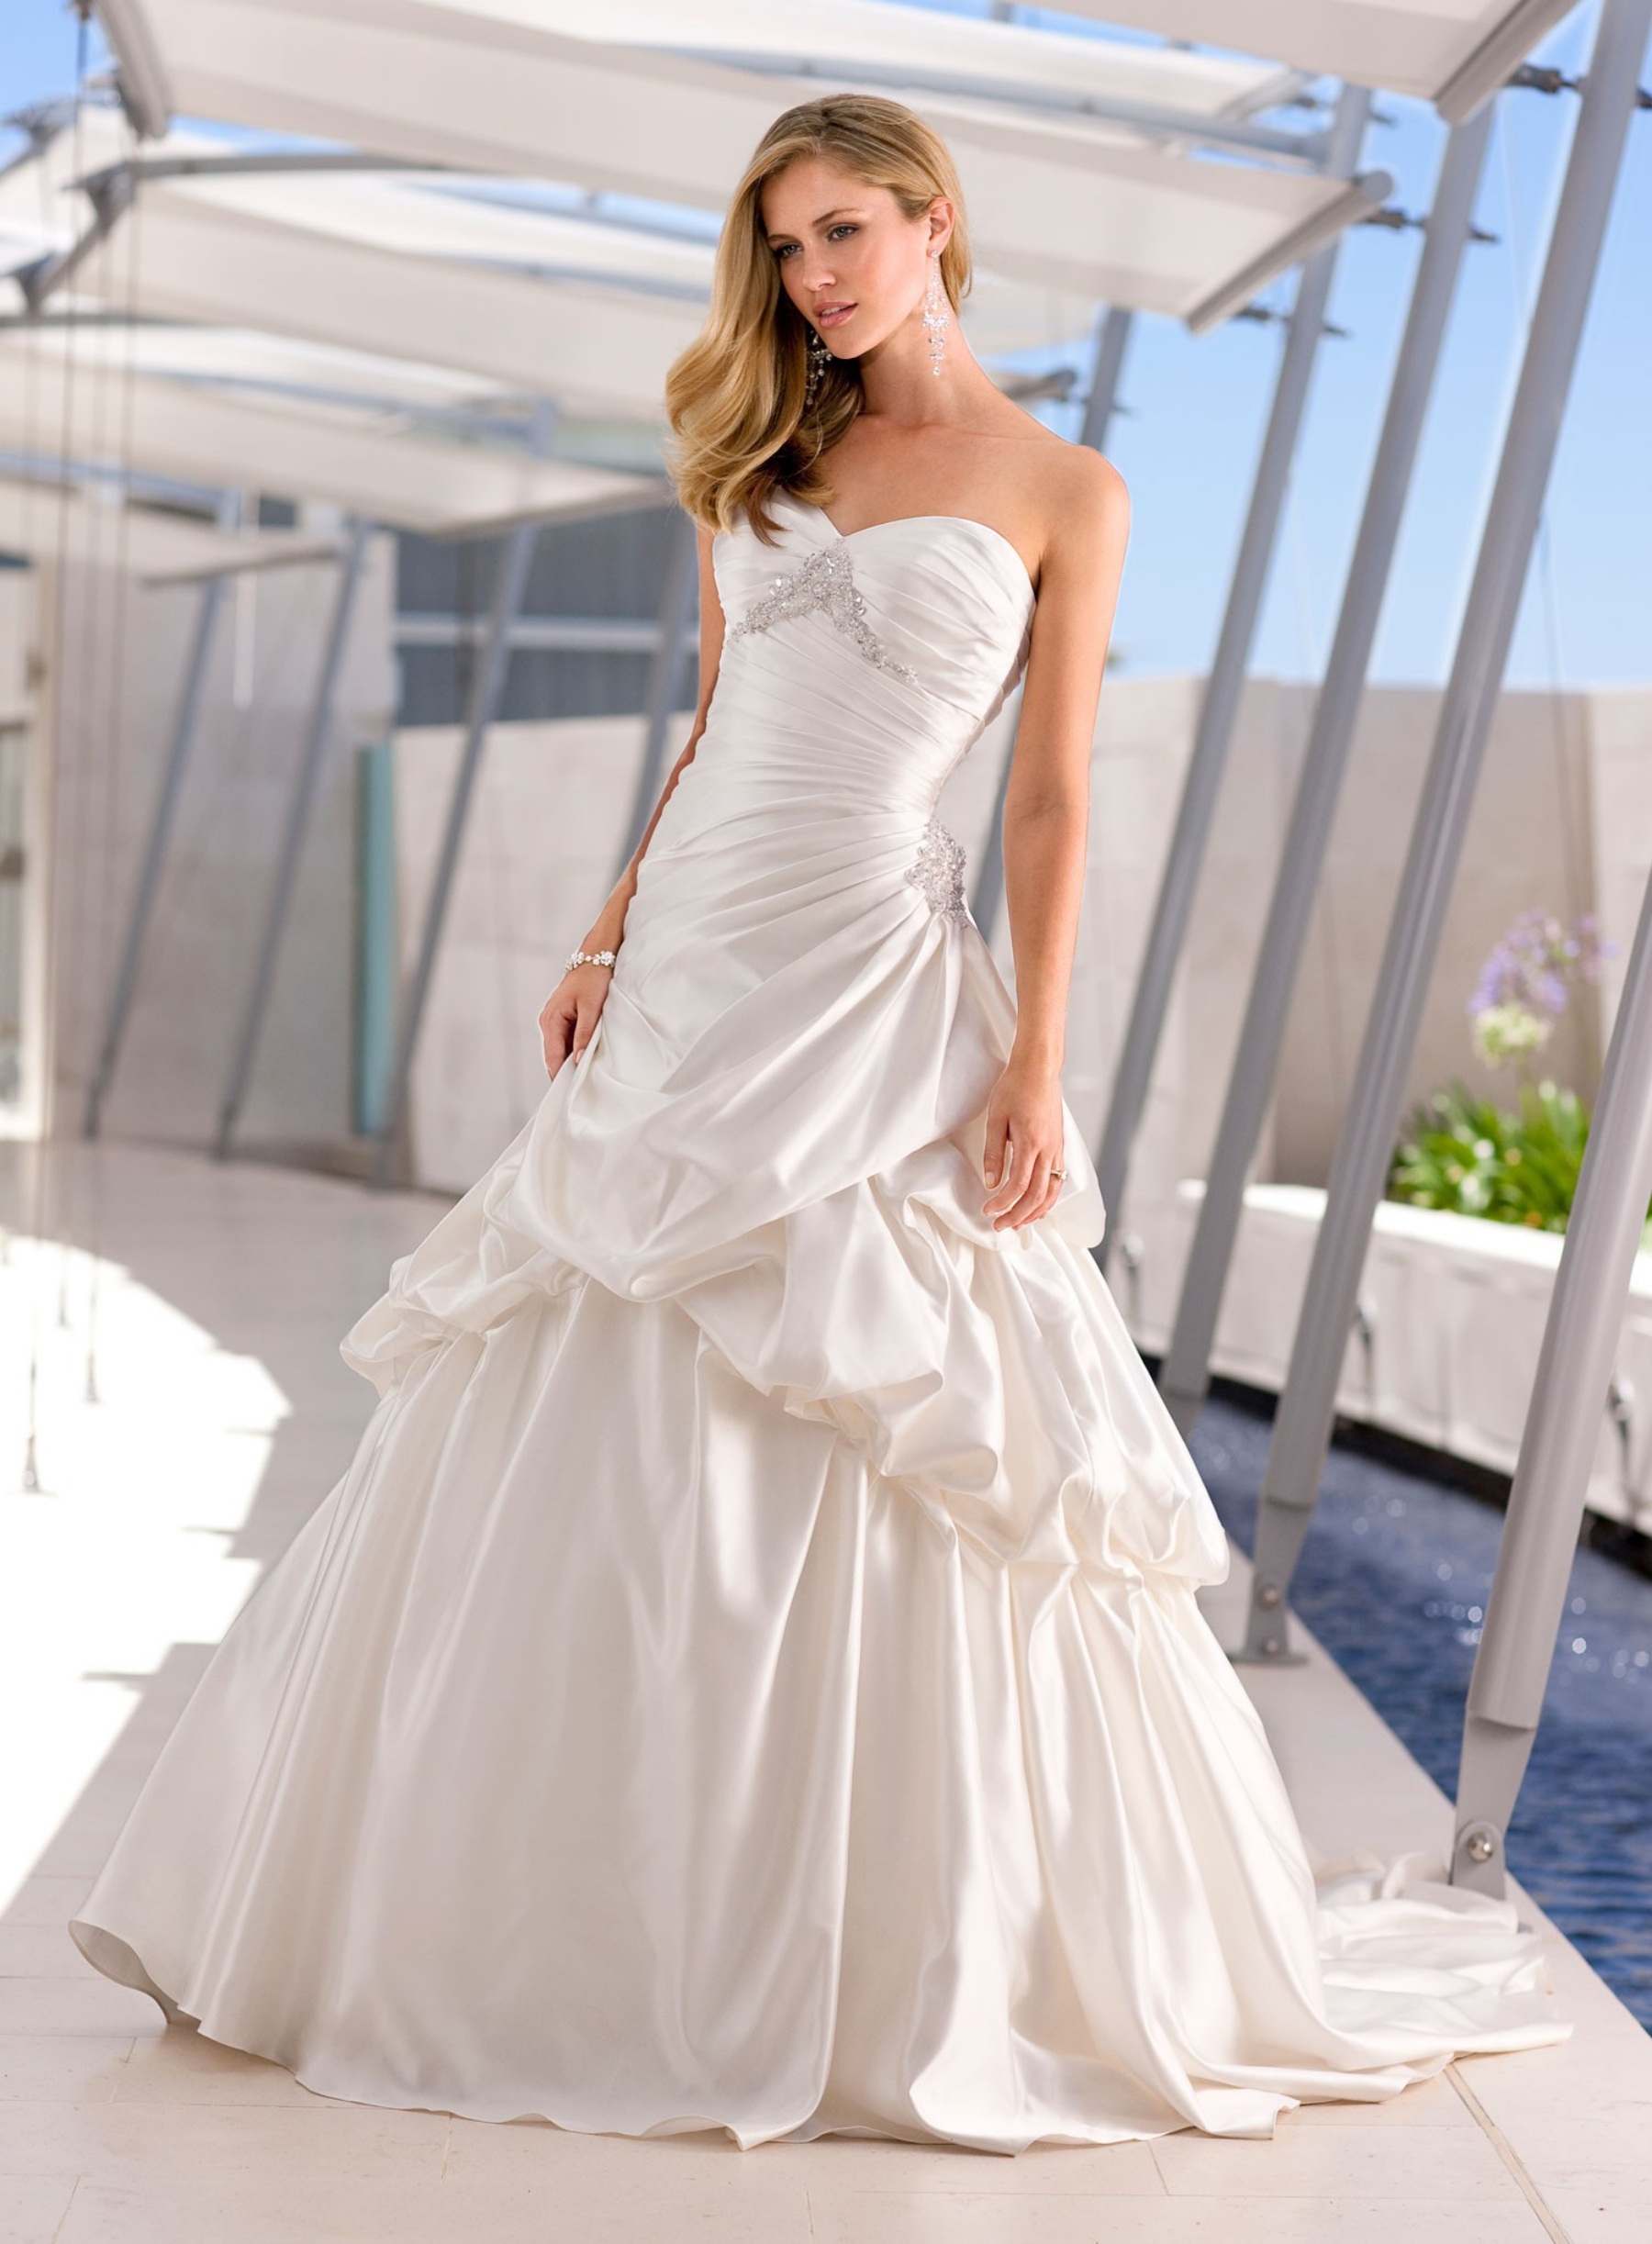 14 Cheap Wedding Dresses Under 100  Getfashionideasm. Informal Wedding Dresses For Over 50. Simple Wedding Dress Short Uk. Odd Colored Wedding Dresses. Vintage Wedding Dresses Grand Rapids Mi. Half Mermaid Wedding Dresses. Princess Wedding Facial And Dress Up Games. Corset Wedding Dresses Ireland. Rustic Bridesmaid Dresses Australia